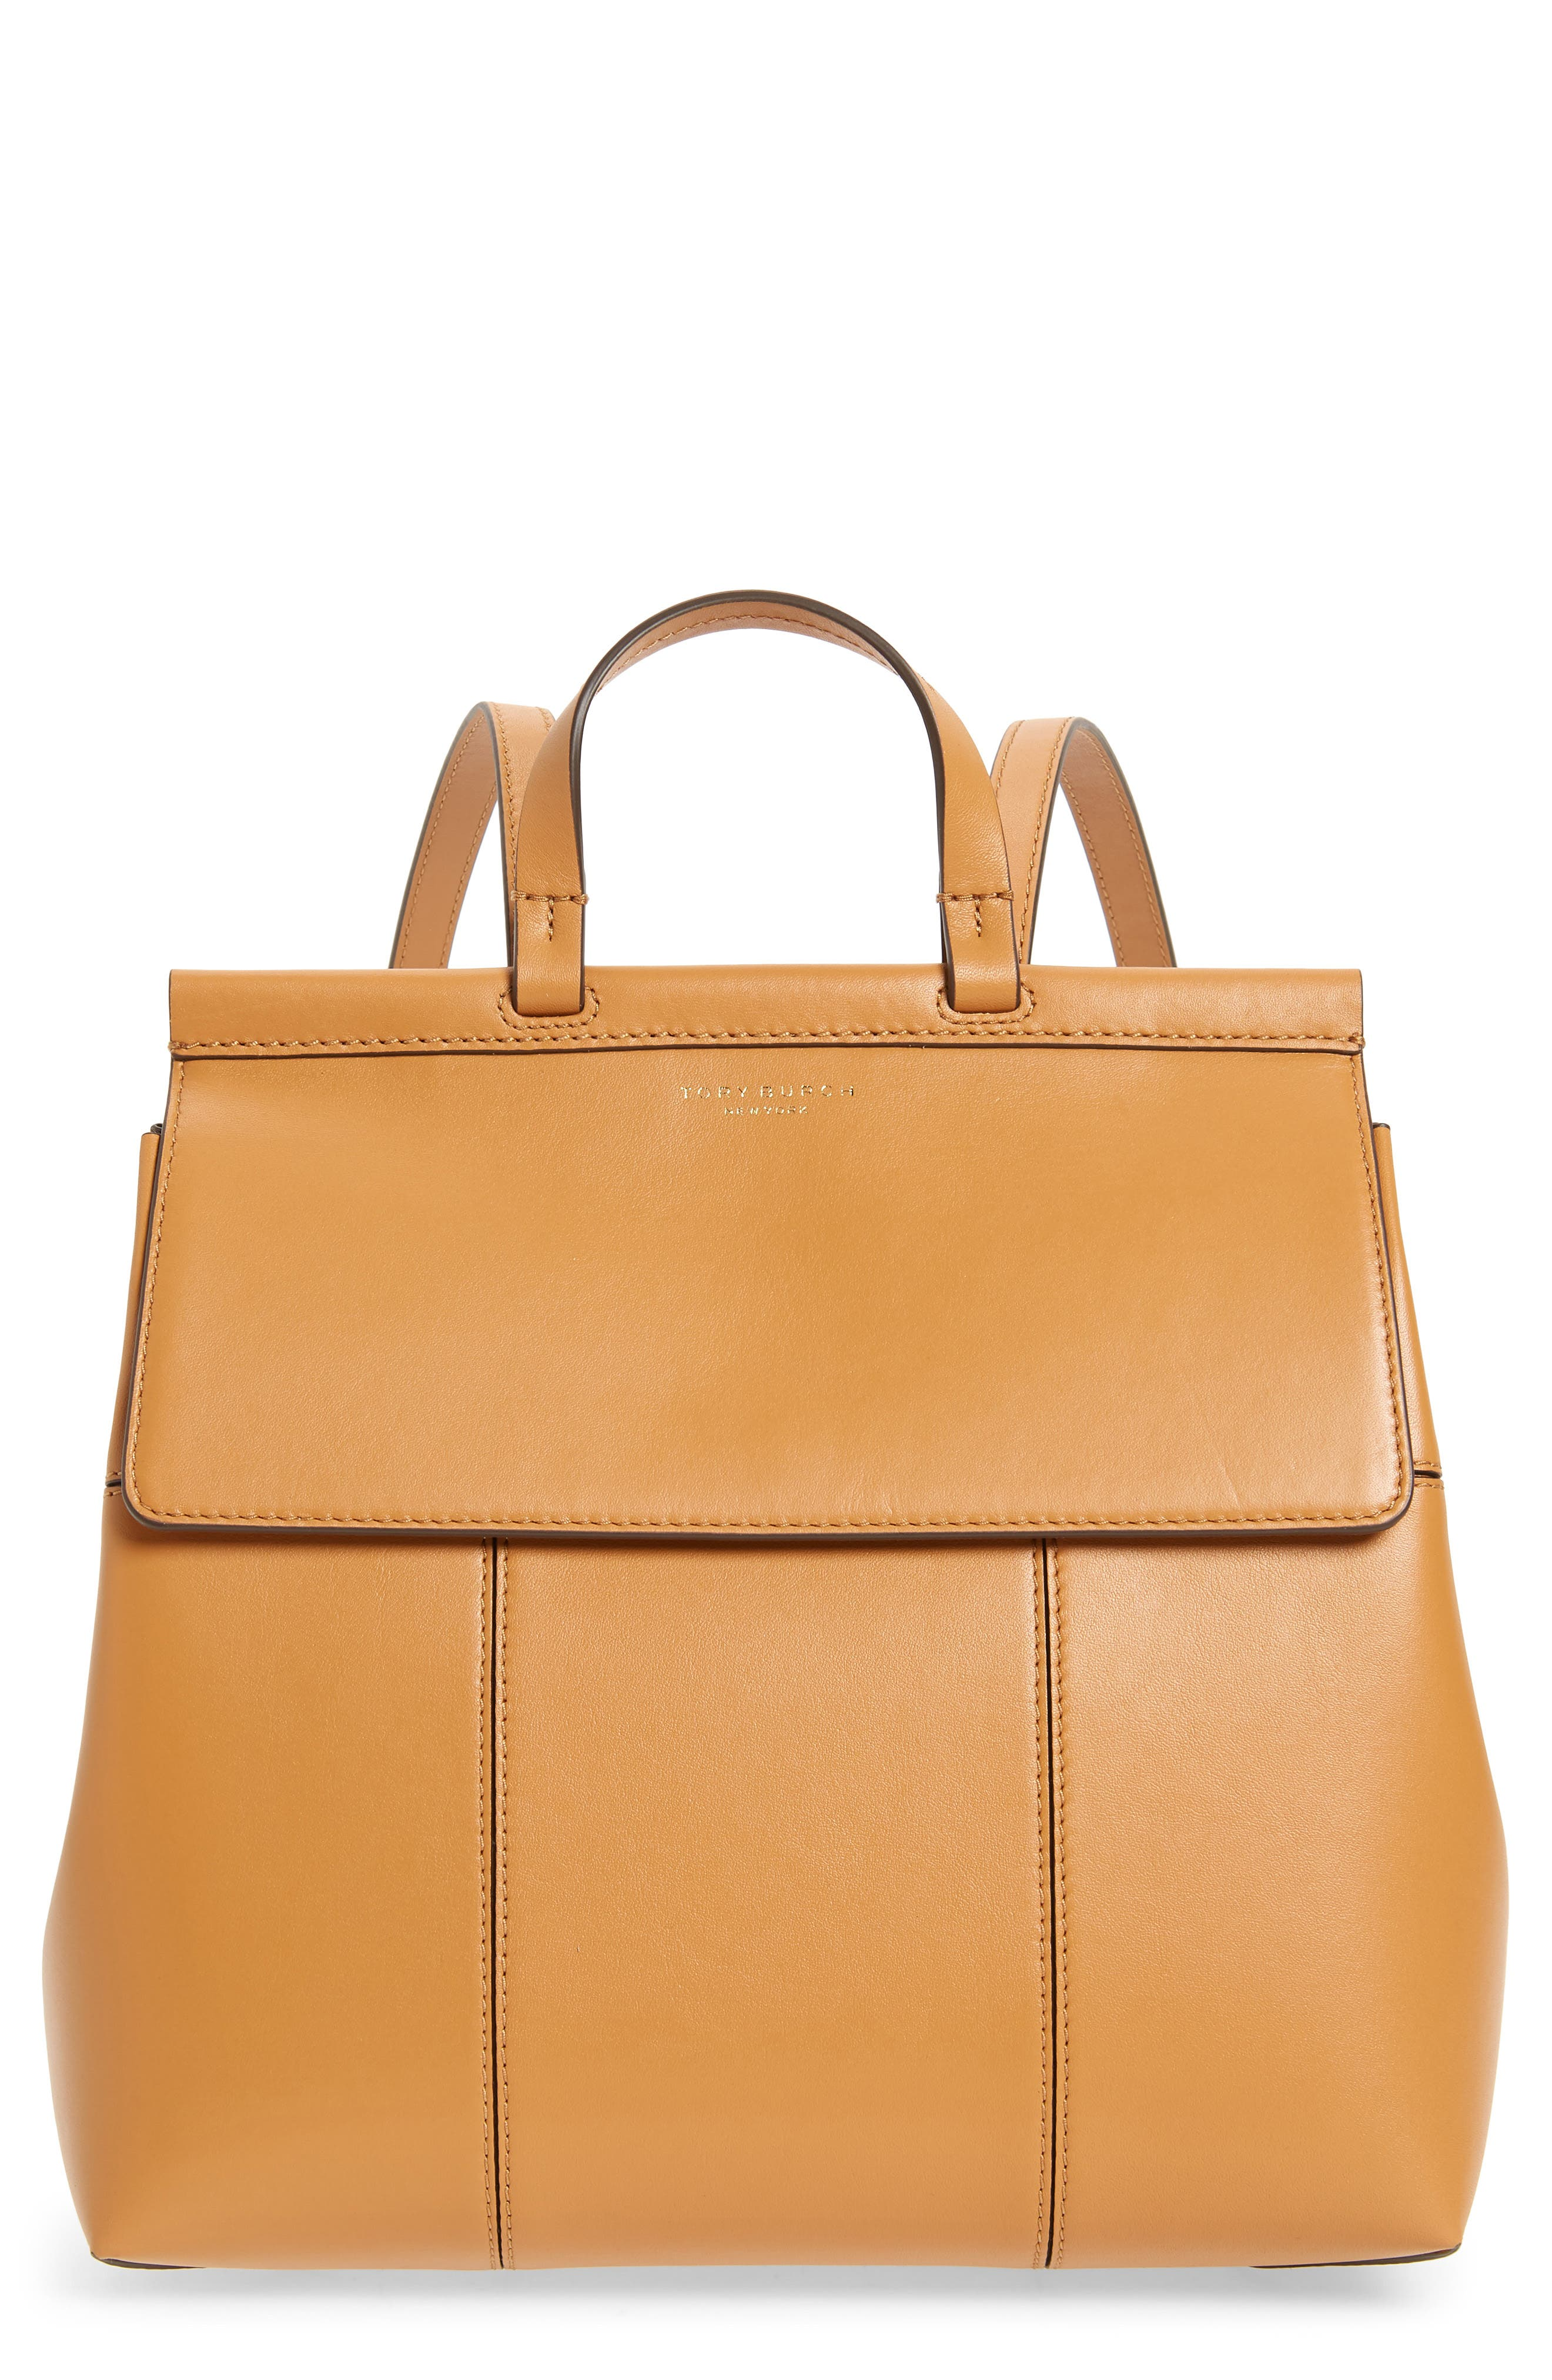 Block T Leather Backpack,                         Main,                         color, BRITISH TAN / BRITISH TAN